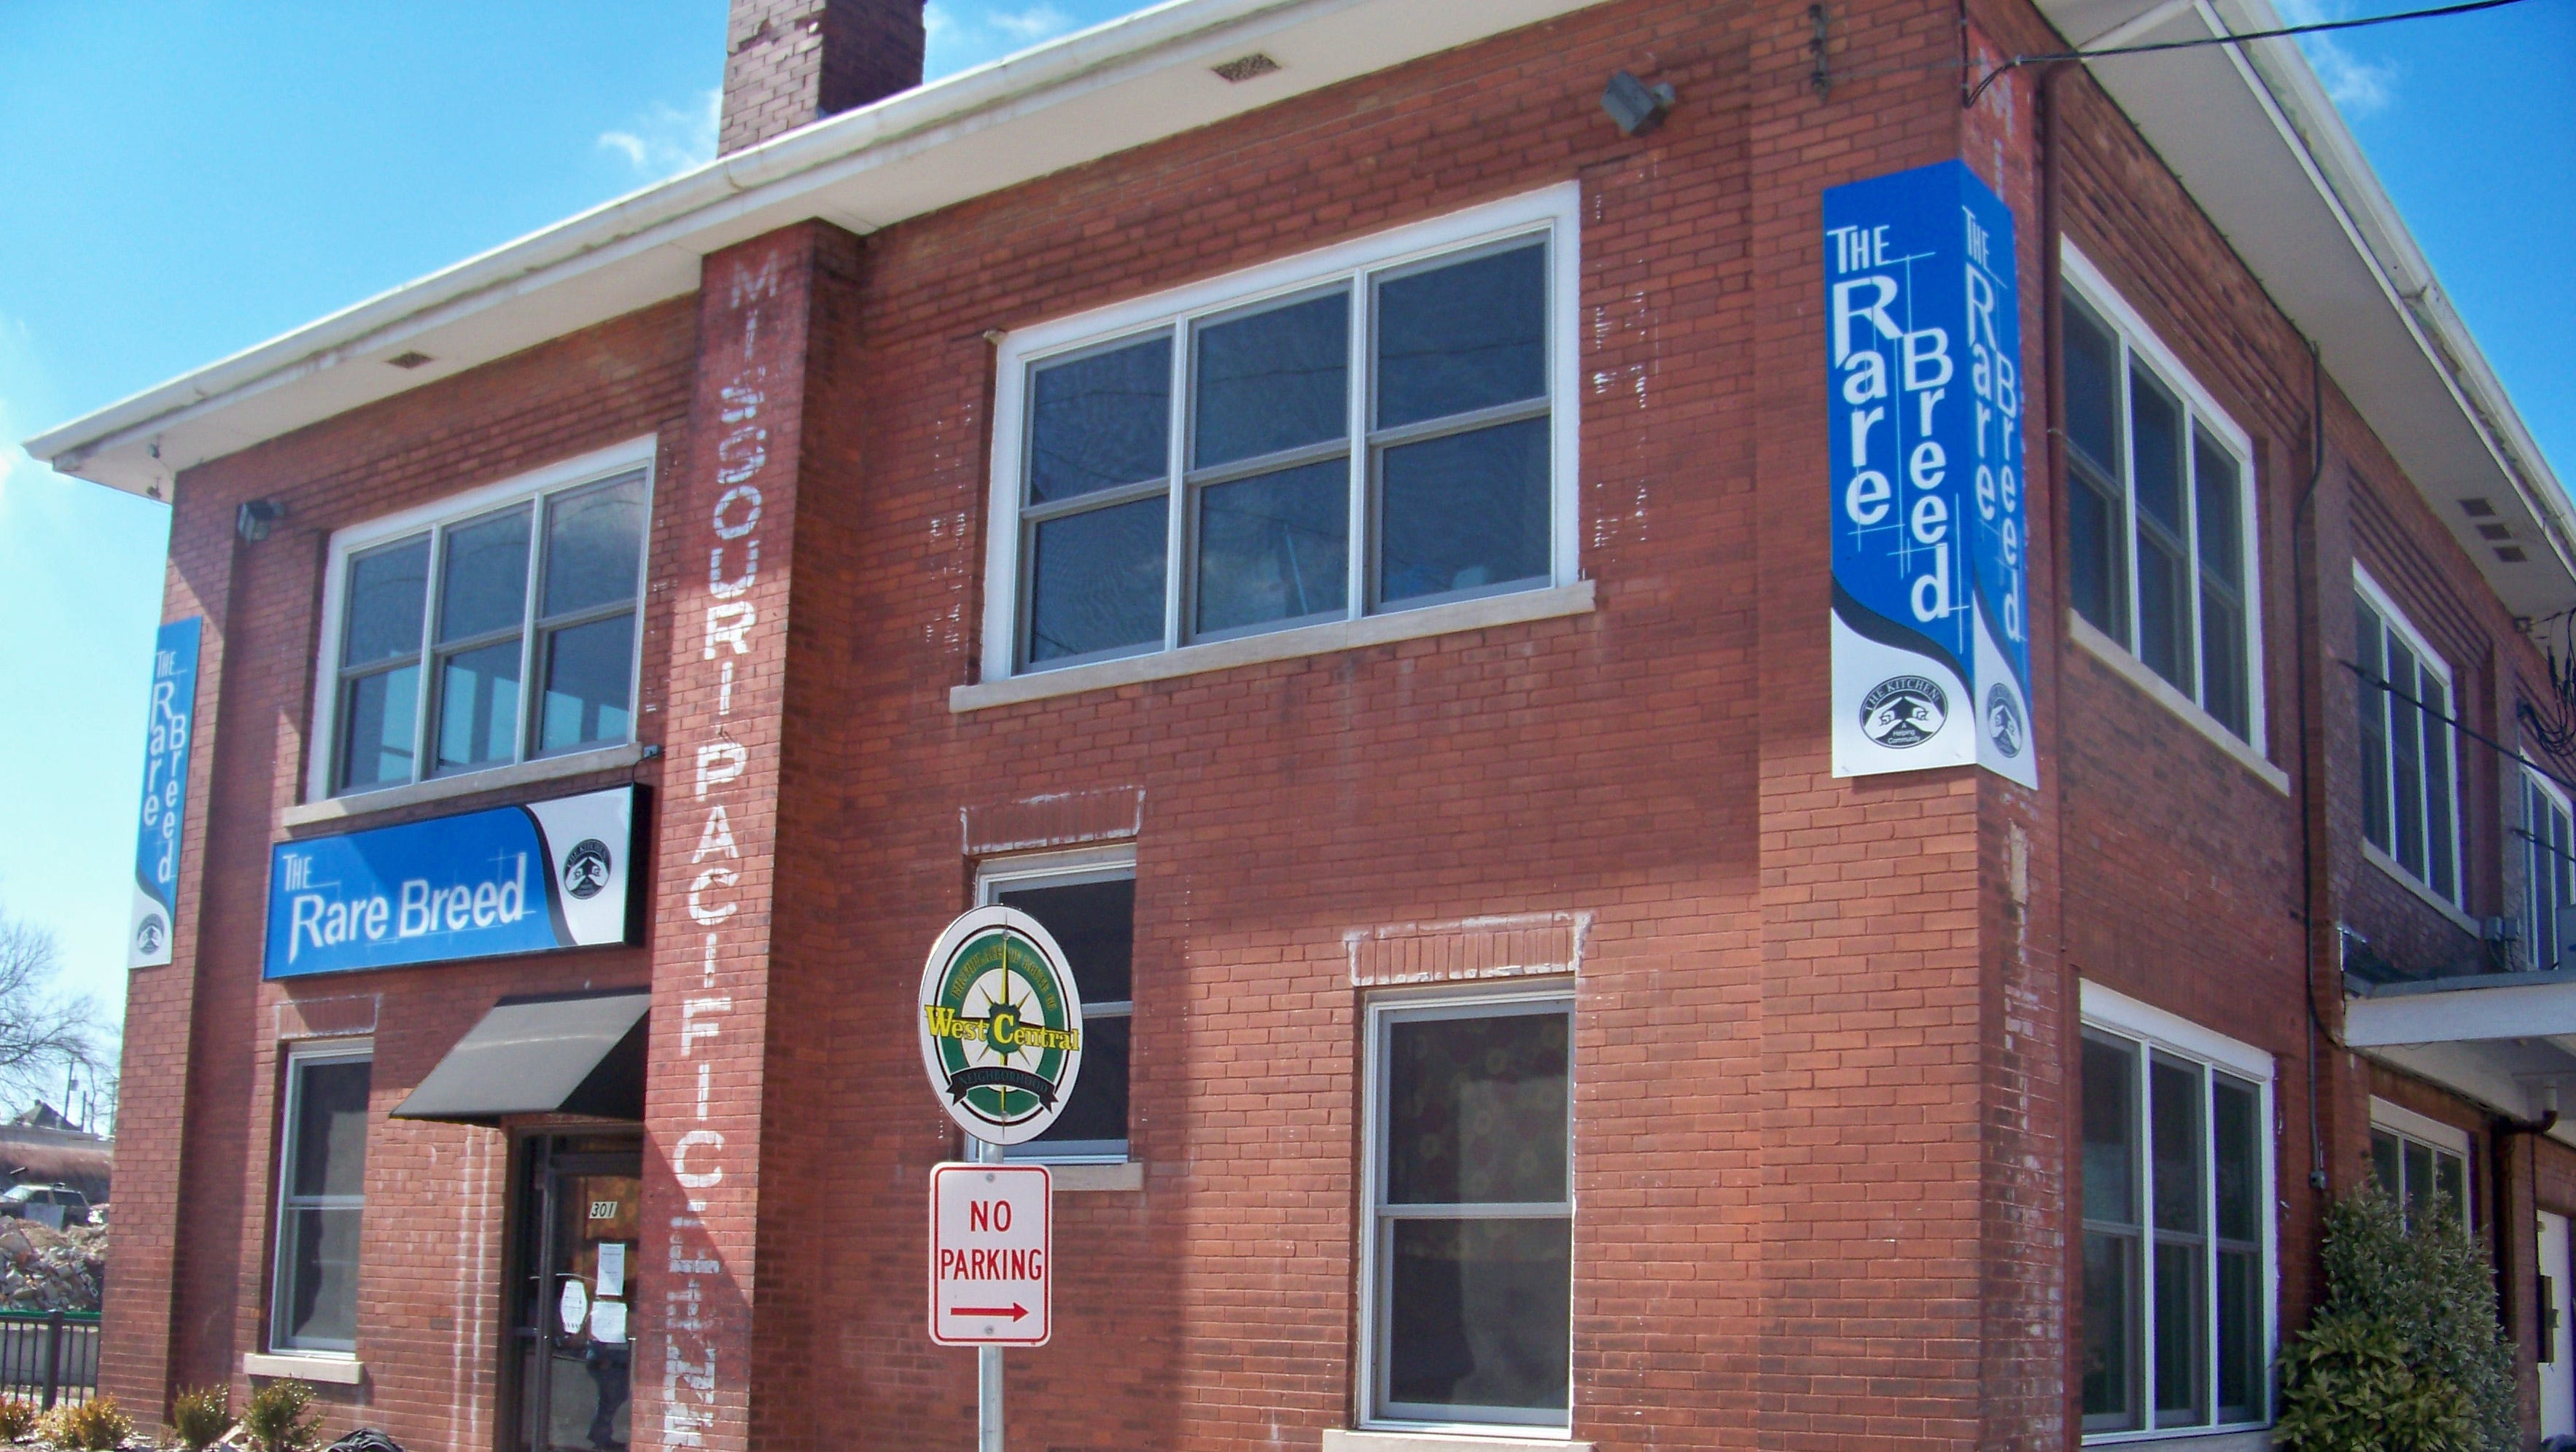 Rare Breed evening center for homeless youth temporarily closed; day services available